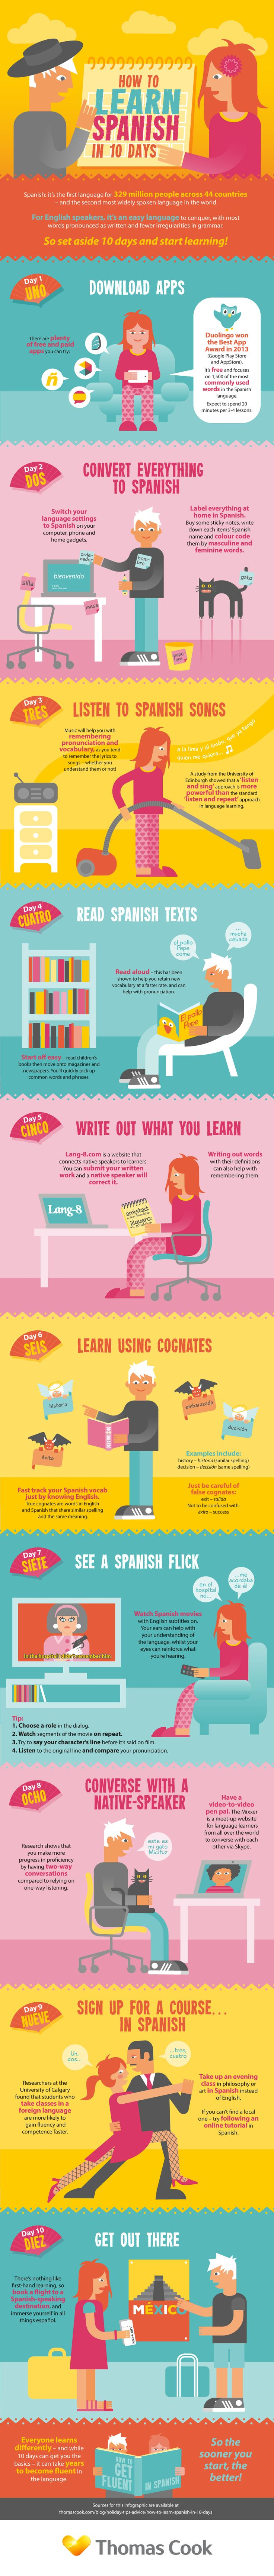 10 Steps to Learn Spanish in 10 Days [Infographic]